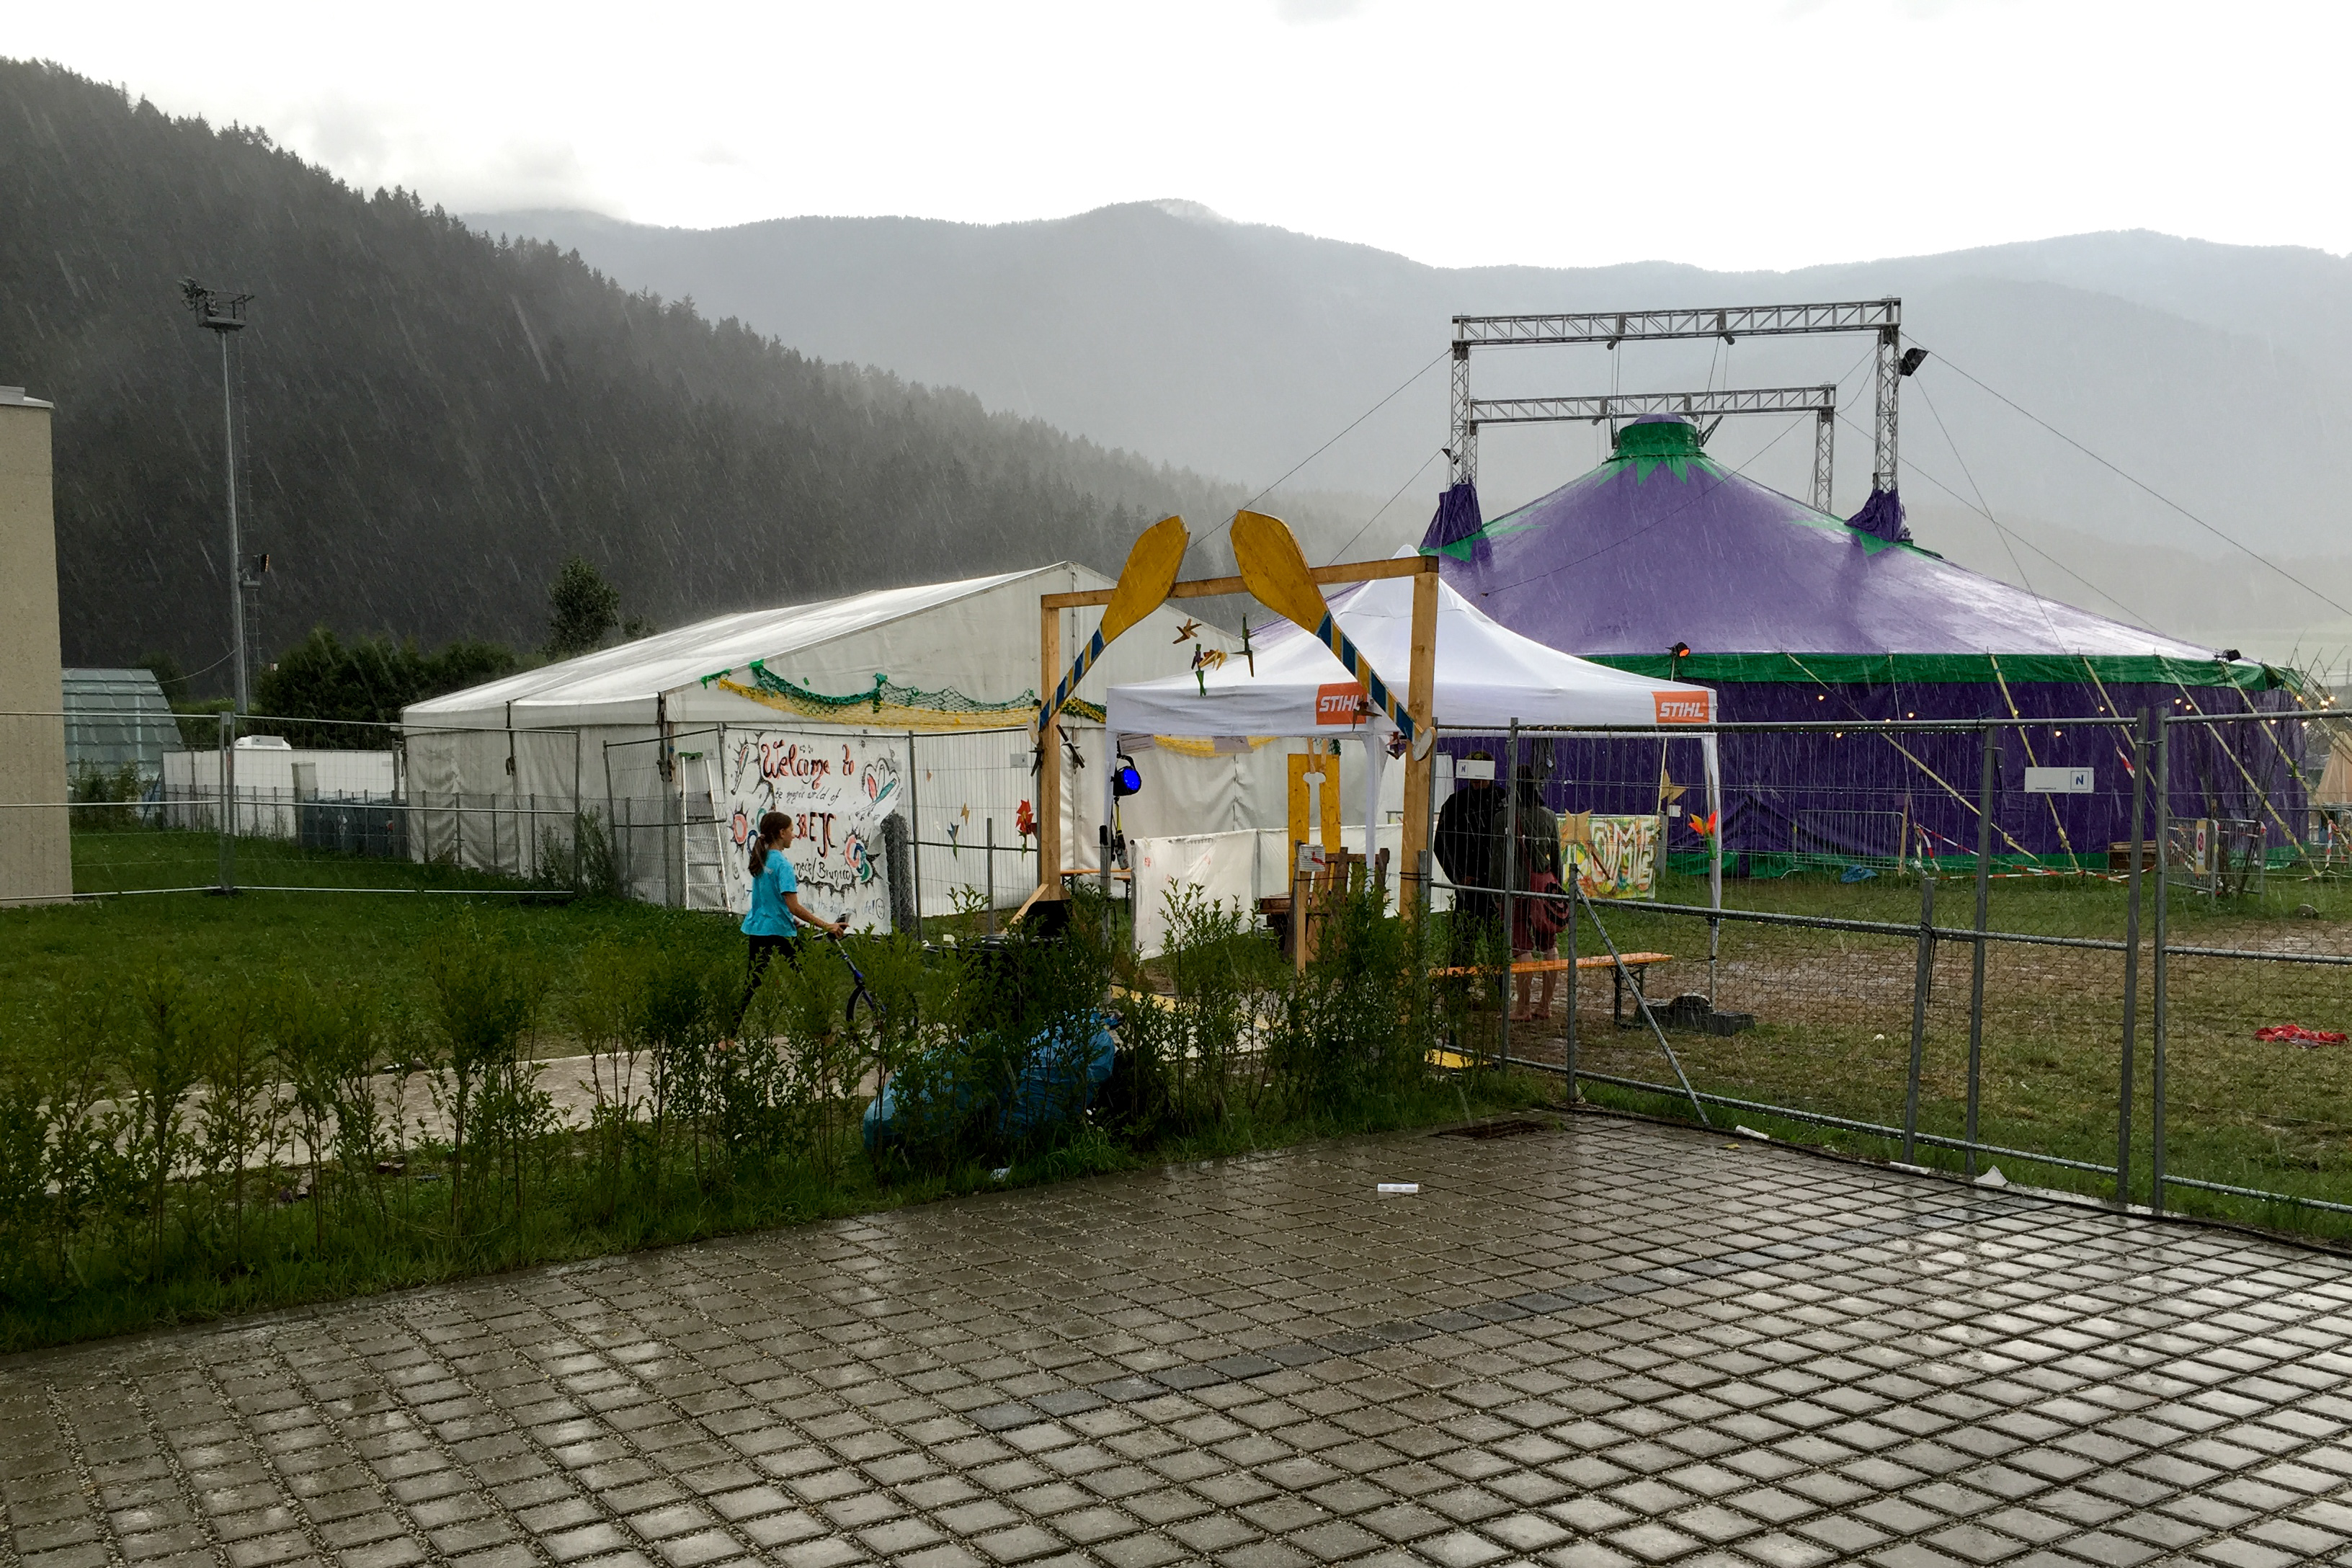 EJC 2015 Bruneck - Saturday August 8th: Saturday rain.